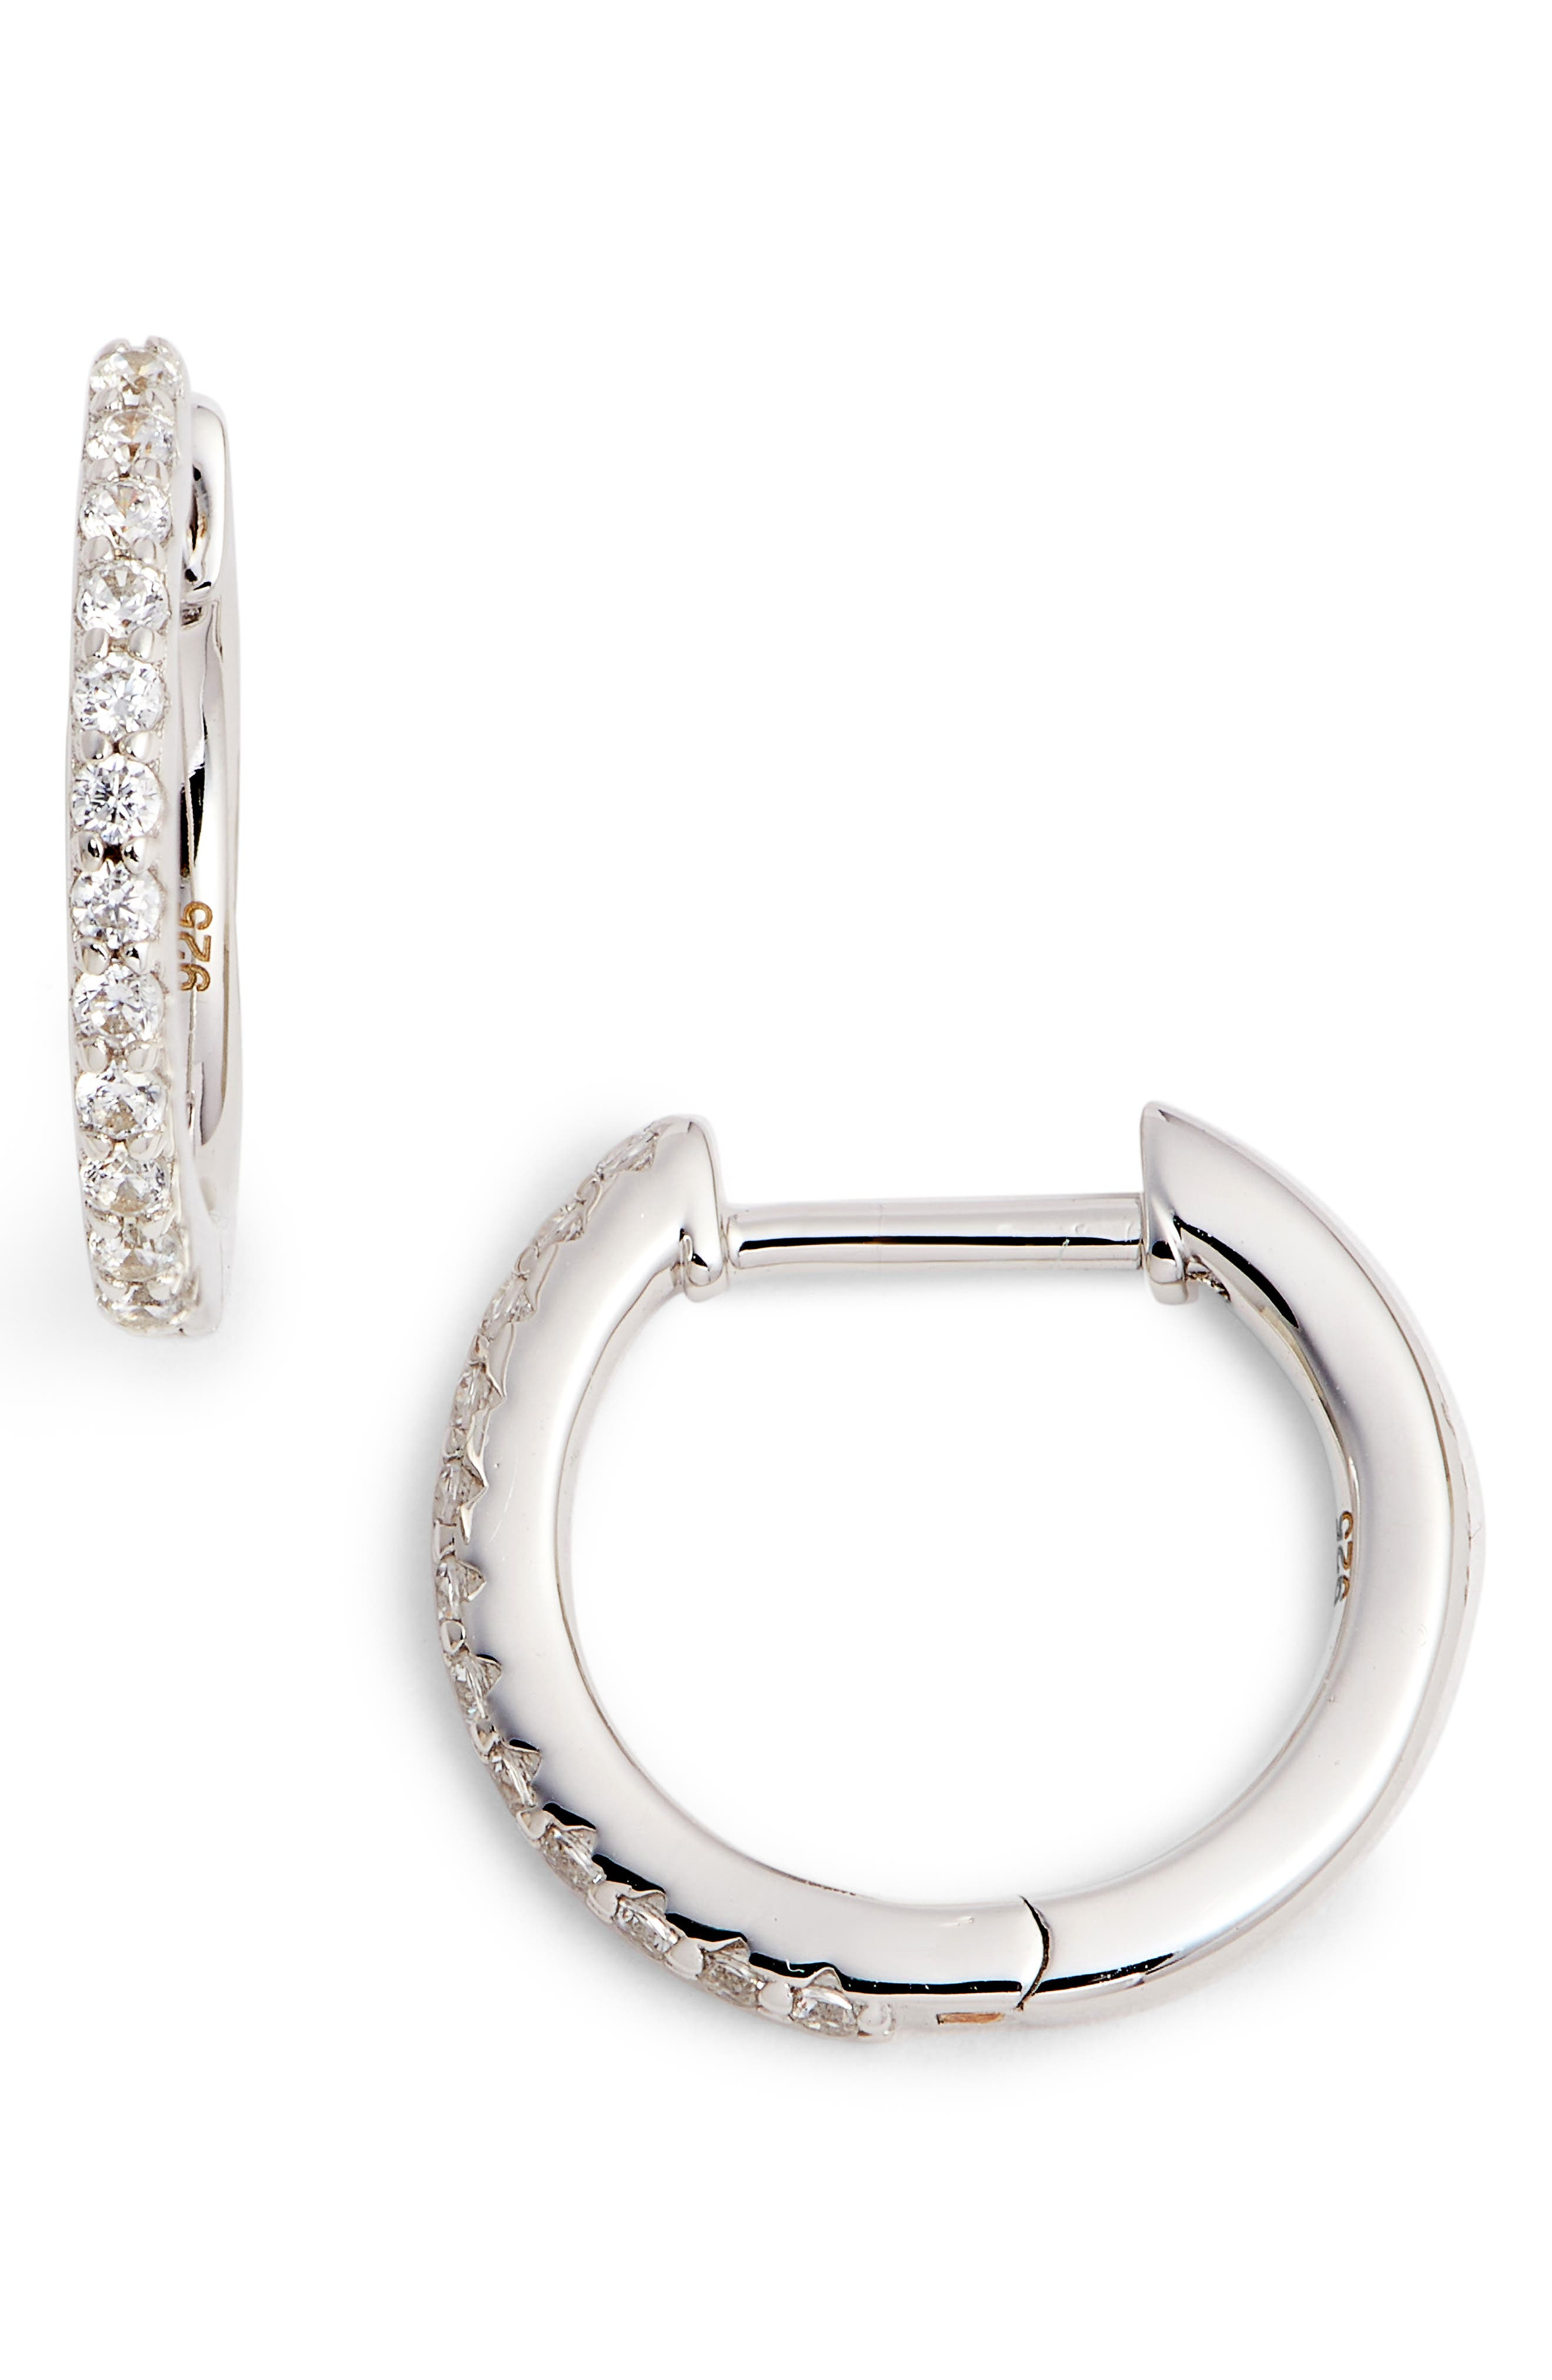 Round Hoop Earrings,                             Main thumbnail 1, color,                             SILVER/ CLEAR